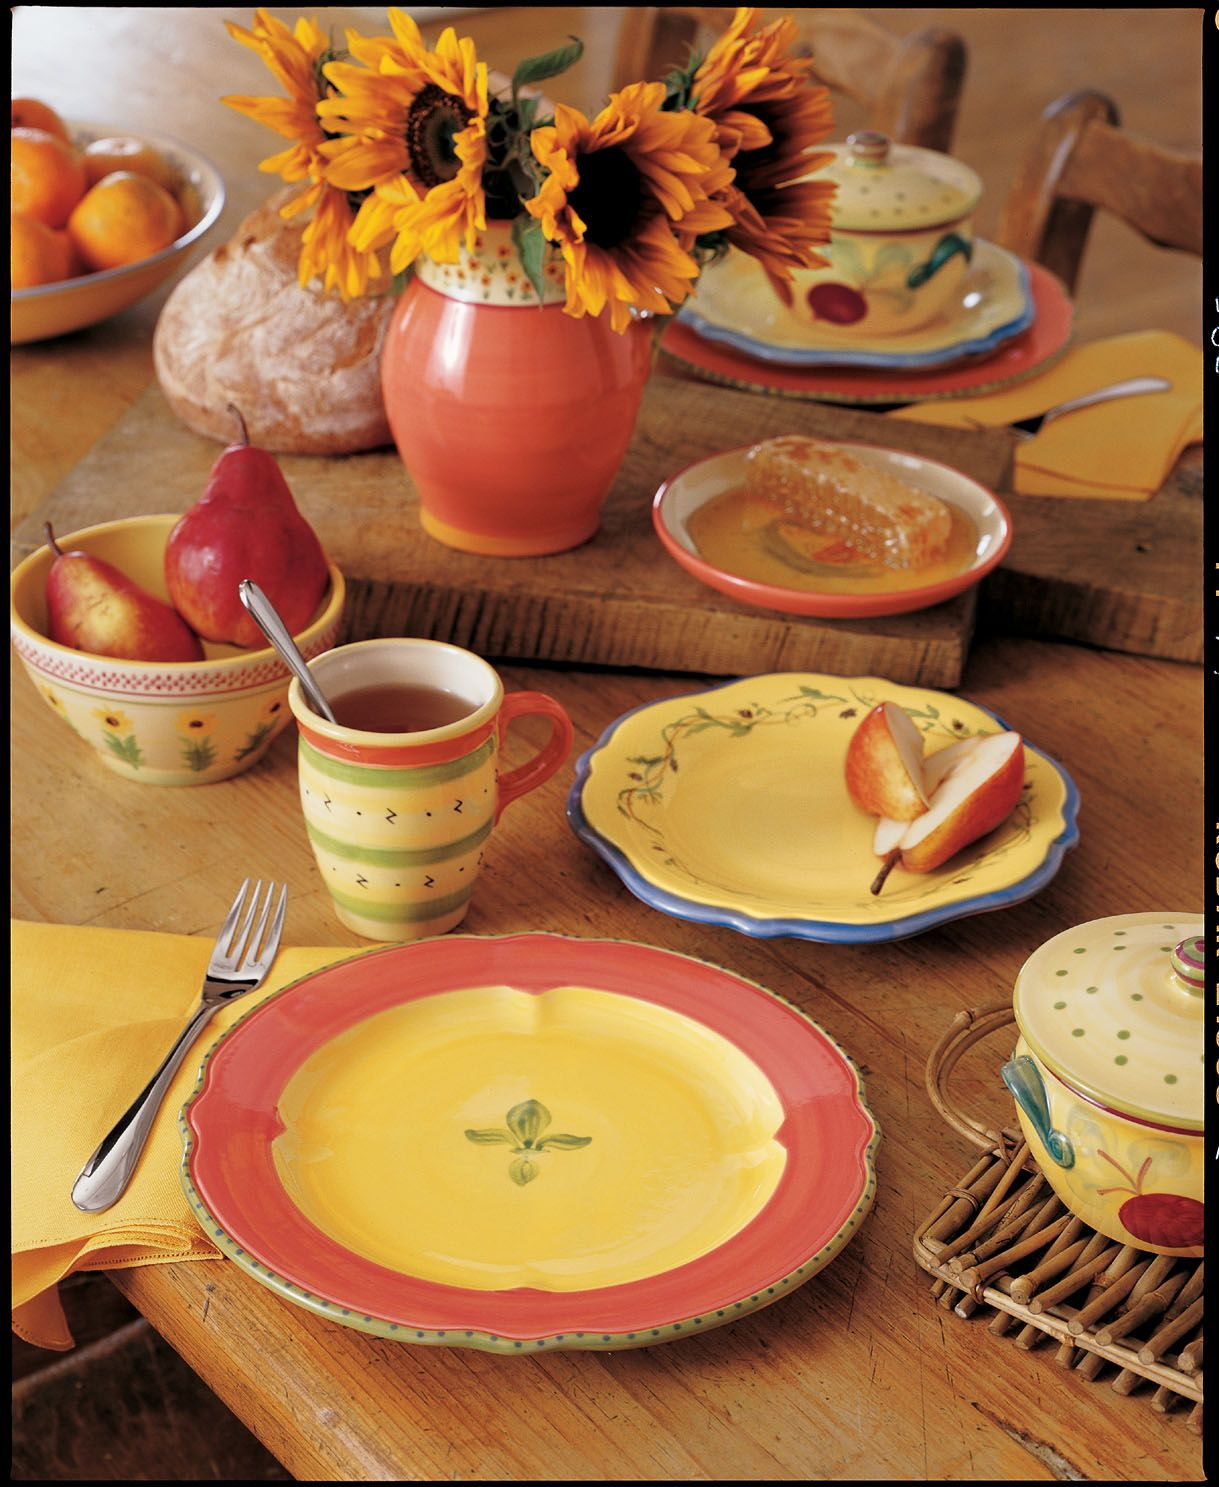 Pfaltzgraff has created a beautiful collection of dinnerware serveware and accessories based on the book The Secrets of Pistoulet by Jana Kolpen.  sc 1 st  Pinterest & Pfaltzgraff has created a beautiful collection of dinnerware ...